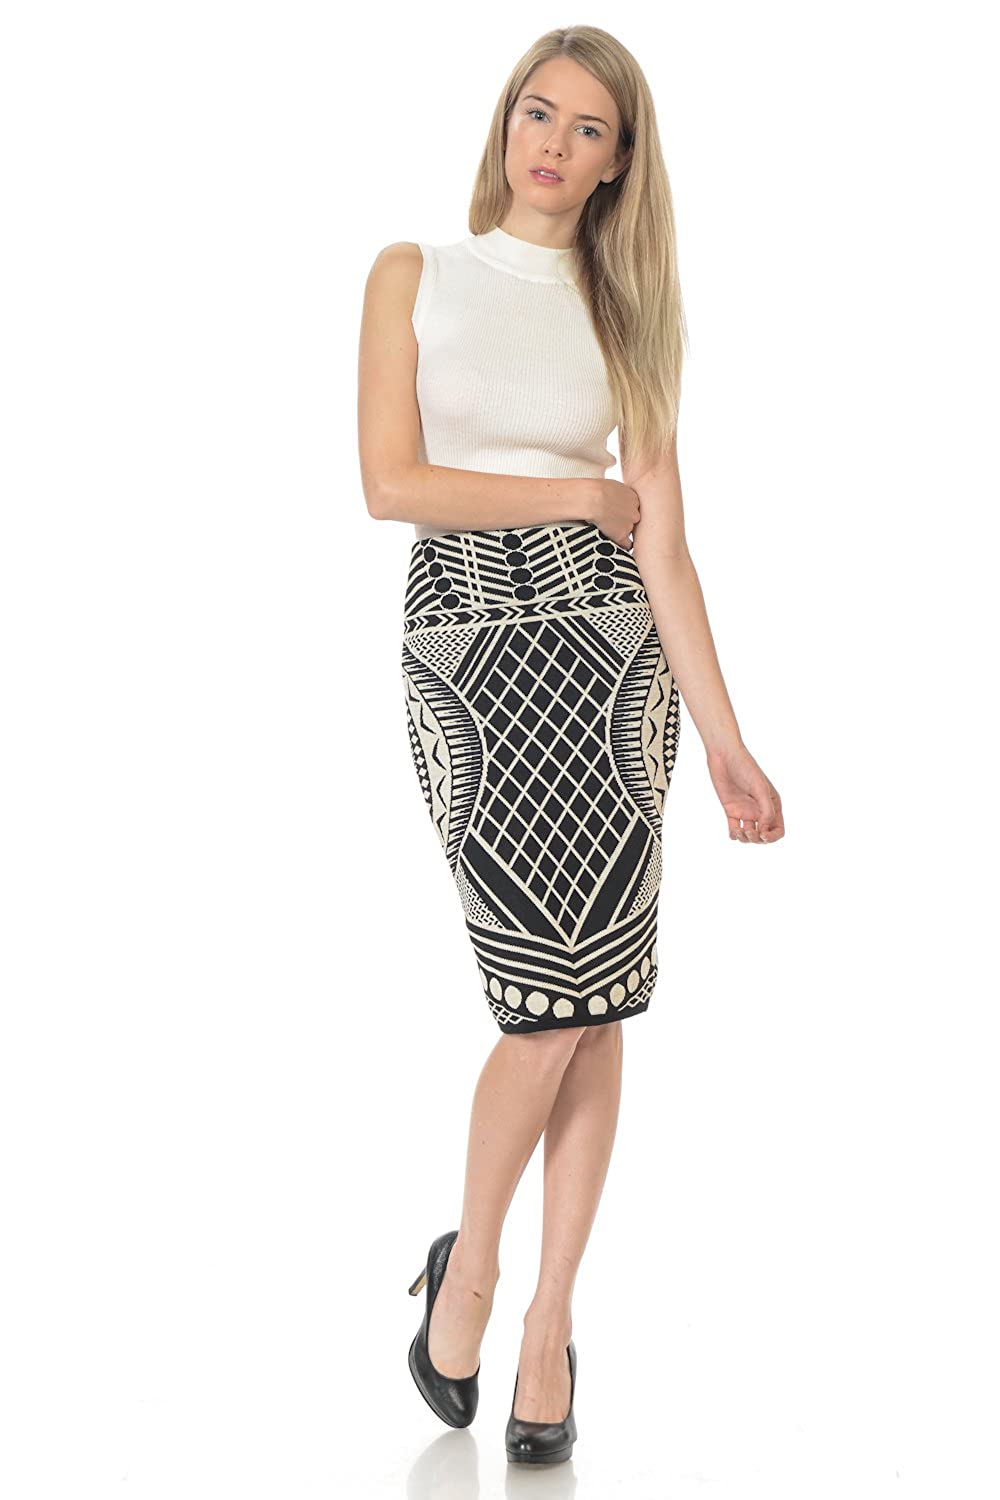 5828892037 Elastic Waist Band Sweater Stretchy Jacquard Pencil Skirt For Office Wear  (Small, Black/Taupe) at Amazon Women's Clothing store: